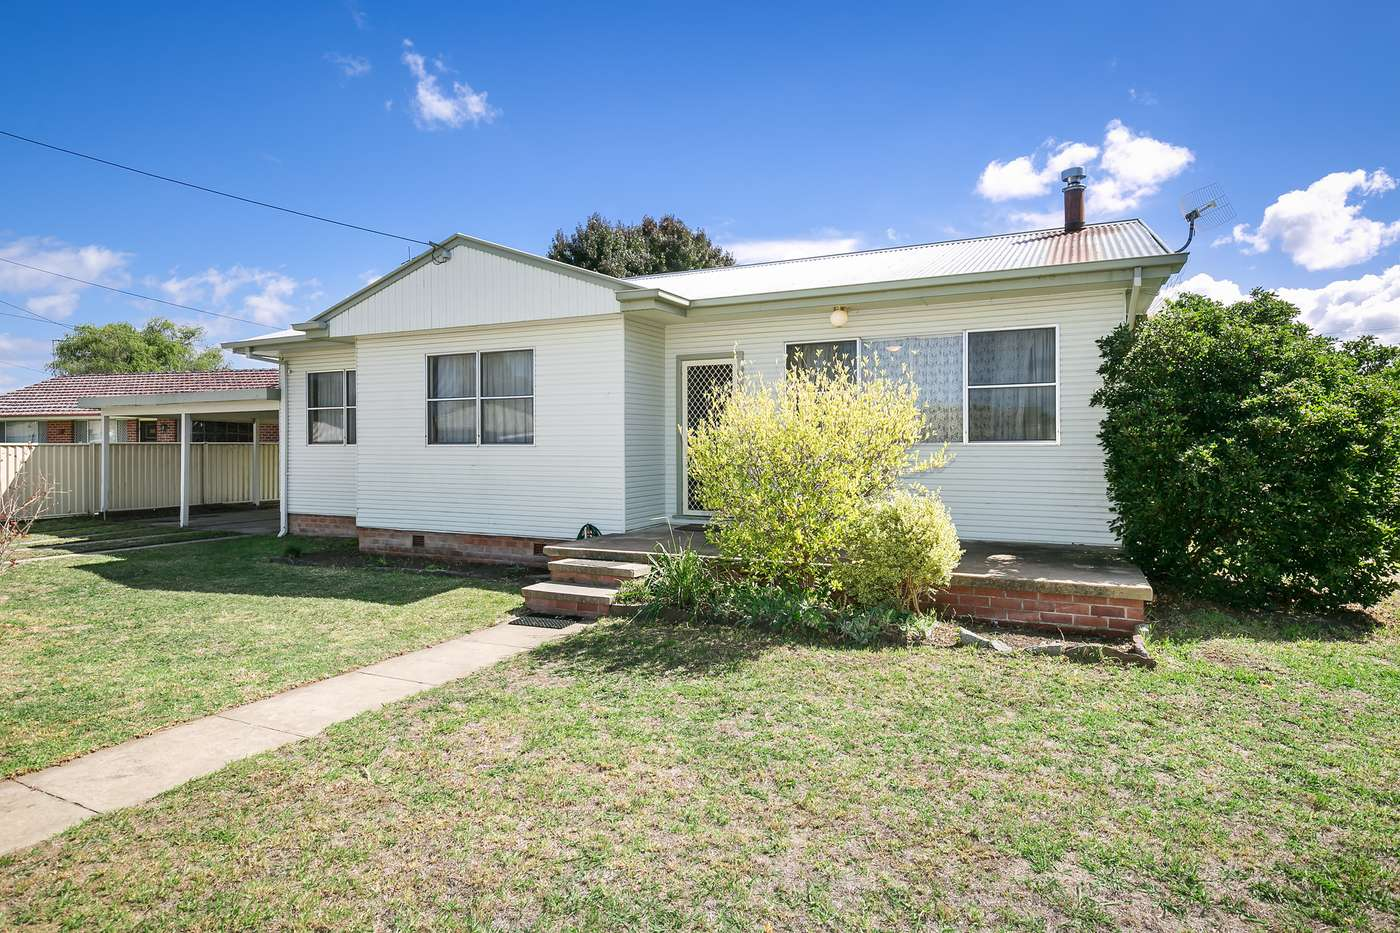 Main view of Homely house listing, 2 Holmes Avenue, Armidale, NSW 2350